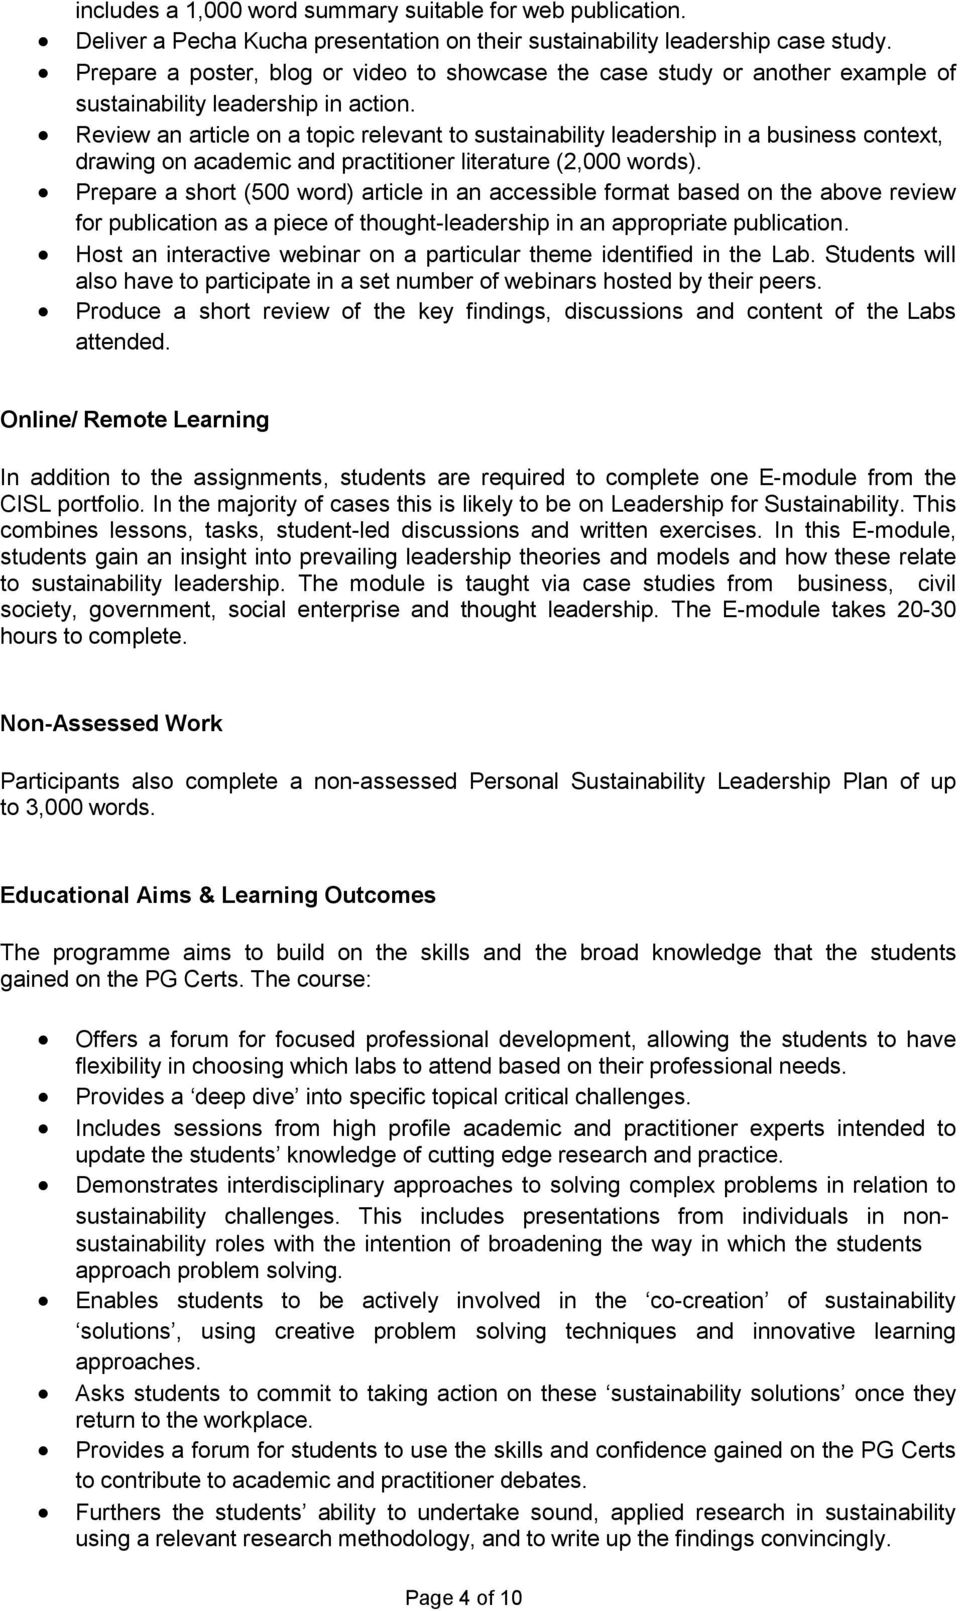 Review an article on a topic relevant to sustainability leadership in a business context, drawing on academic and practitioner literature (2,000 words).